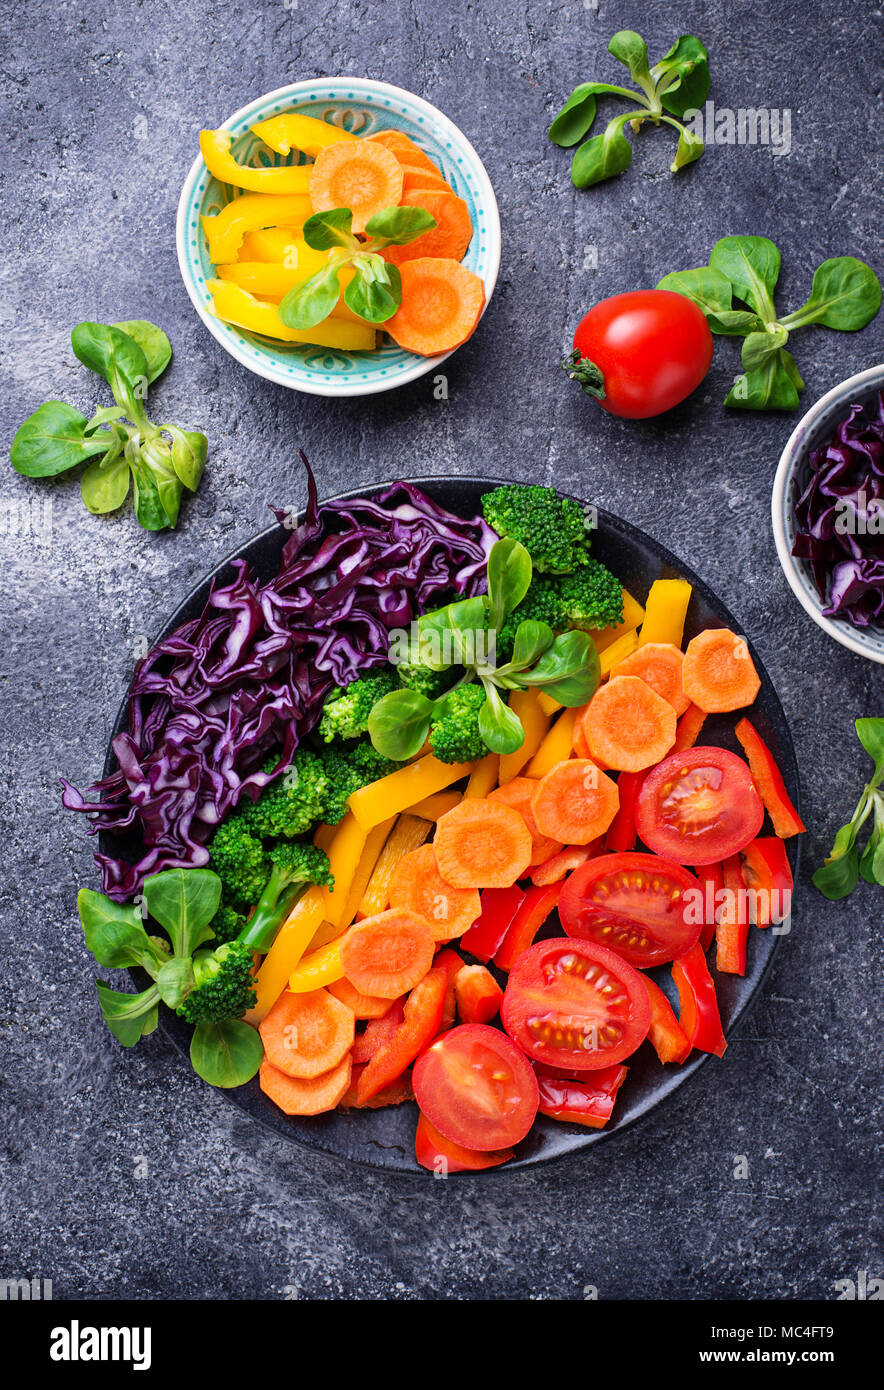 Fresh healthy vegetarian rainbow salad - Stock Image